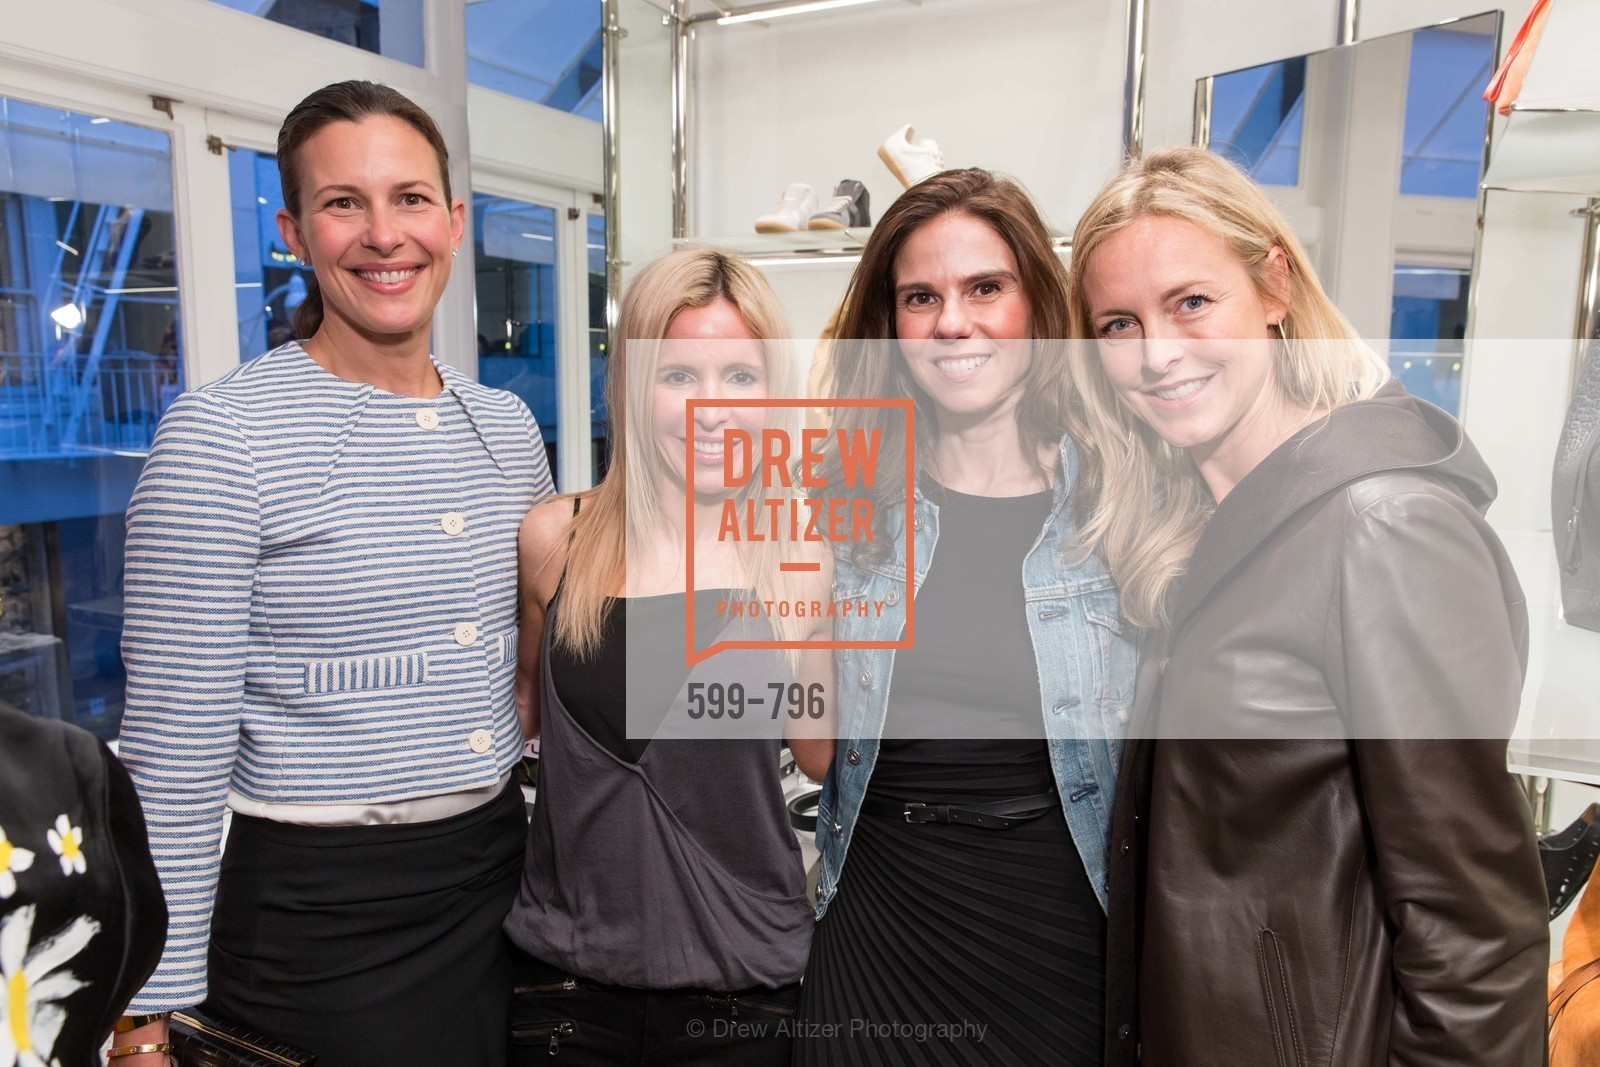 Erin Lowenberg, Lana Adair, Andrea Zola, Kate Chung, MAISON MARGIELA San Francisco Boutique Grand Opening Event, US, April 24th, 2015,Drew Altizer, Drew Altizer Photography, full-service agency, private events, San Francisco photographer, photographer california